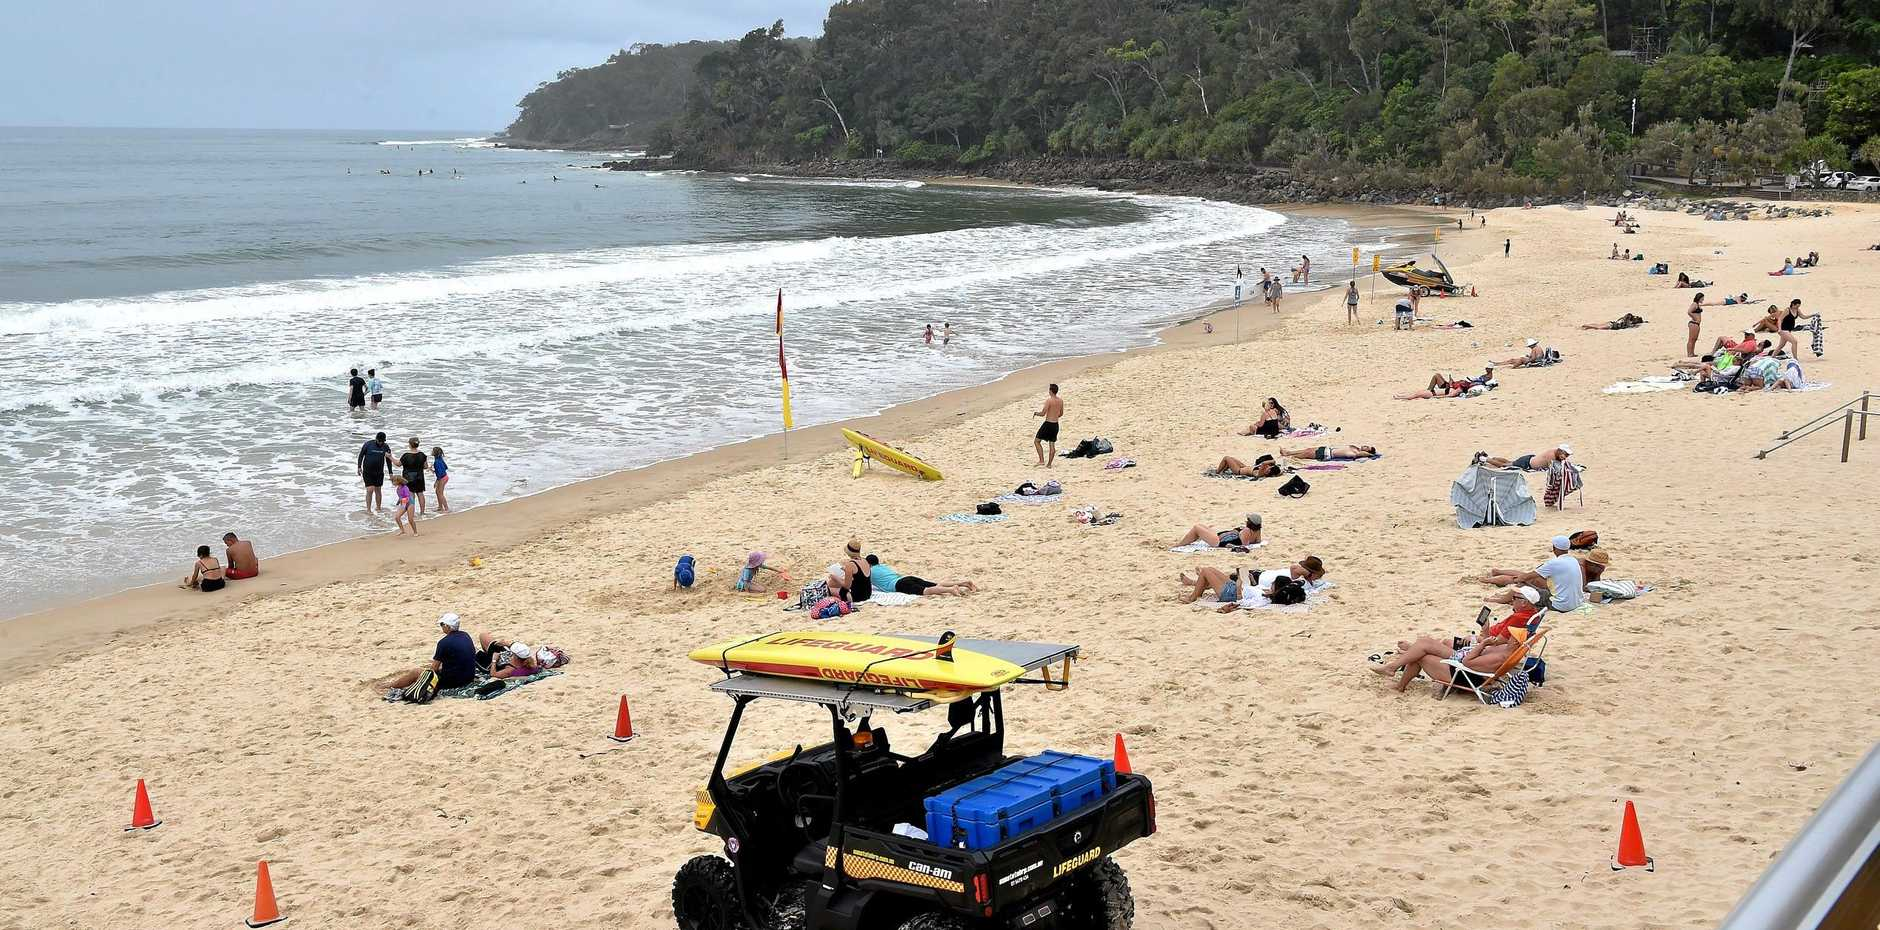 A 69-year-old man was found dead in the water at Noosa main beach yesterday evening.